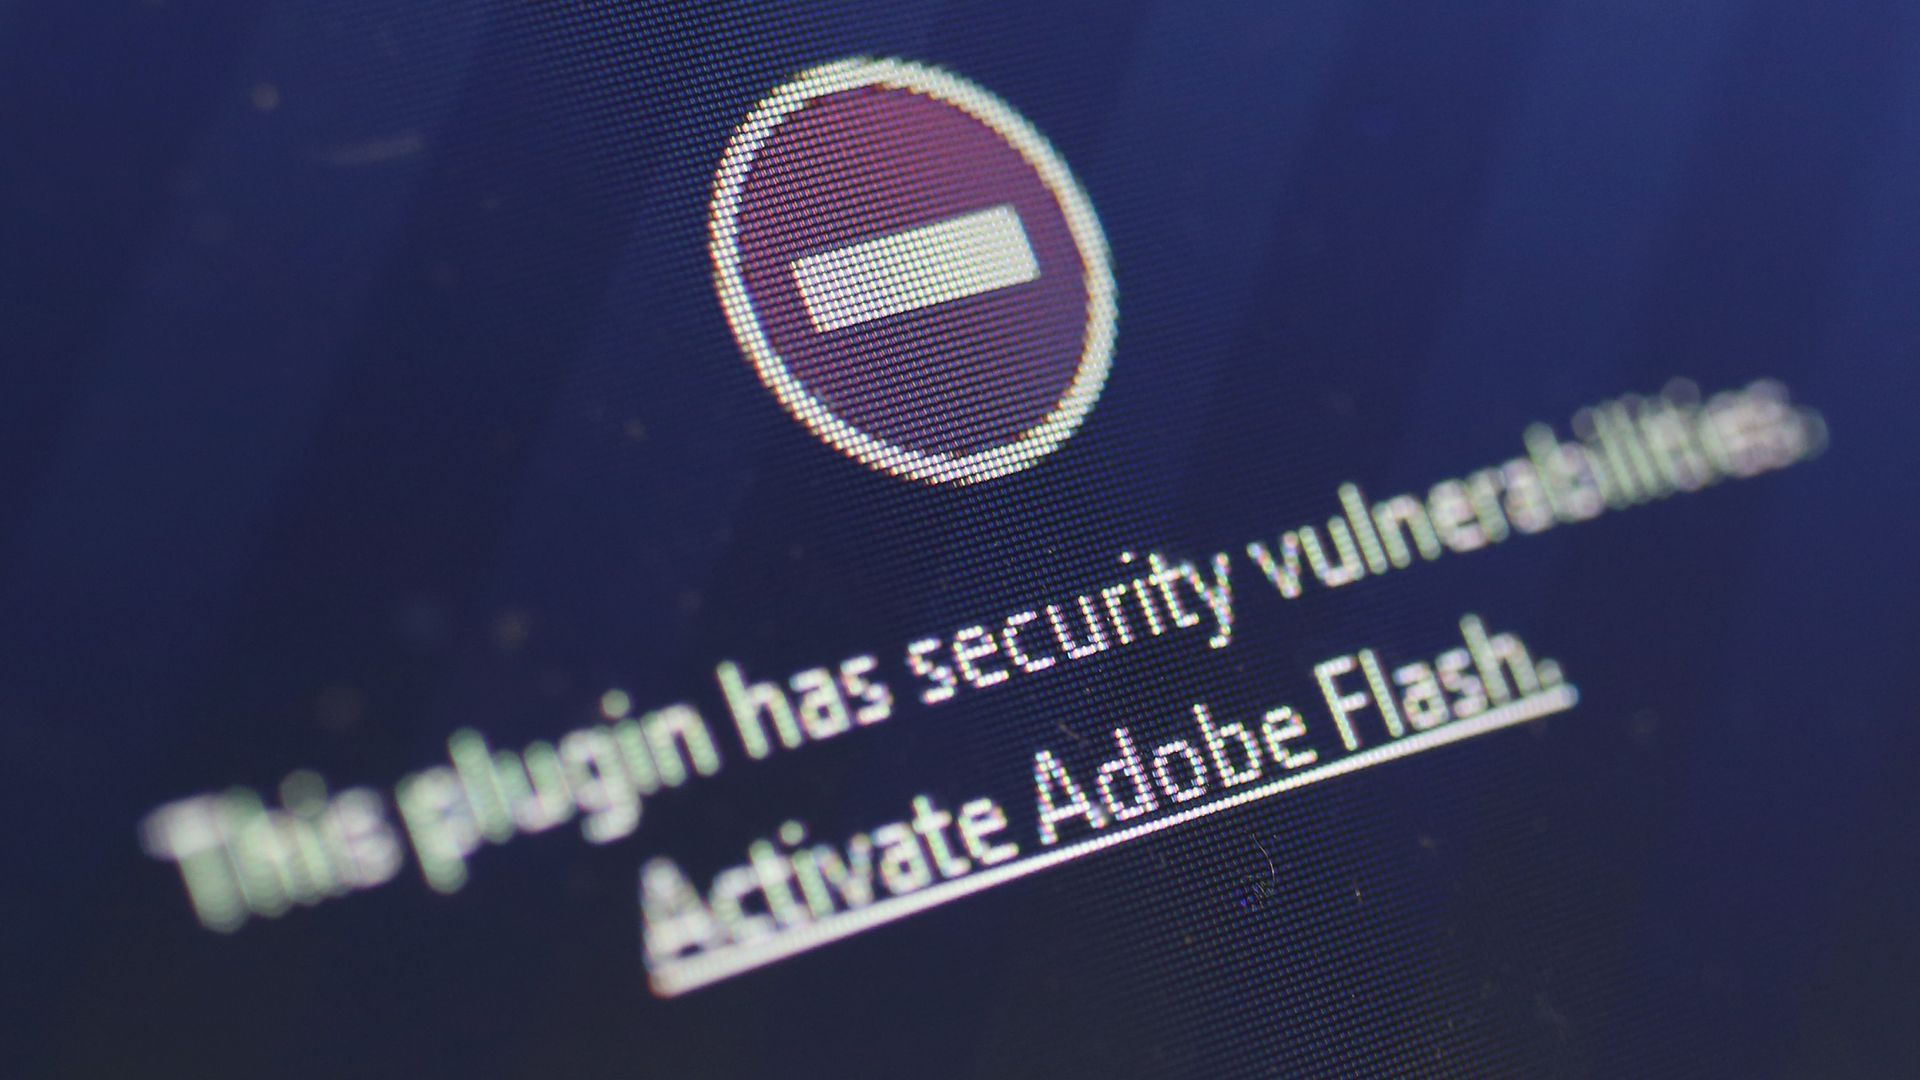 A message warning users against Flash